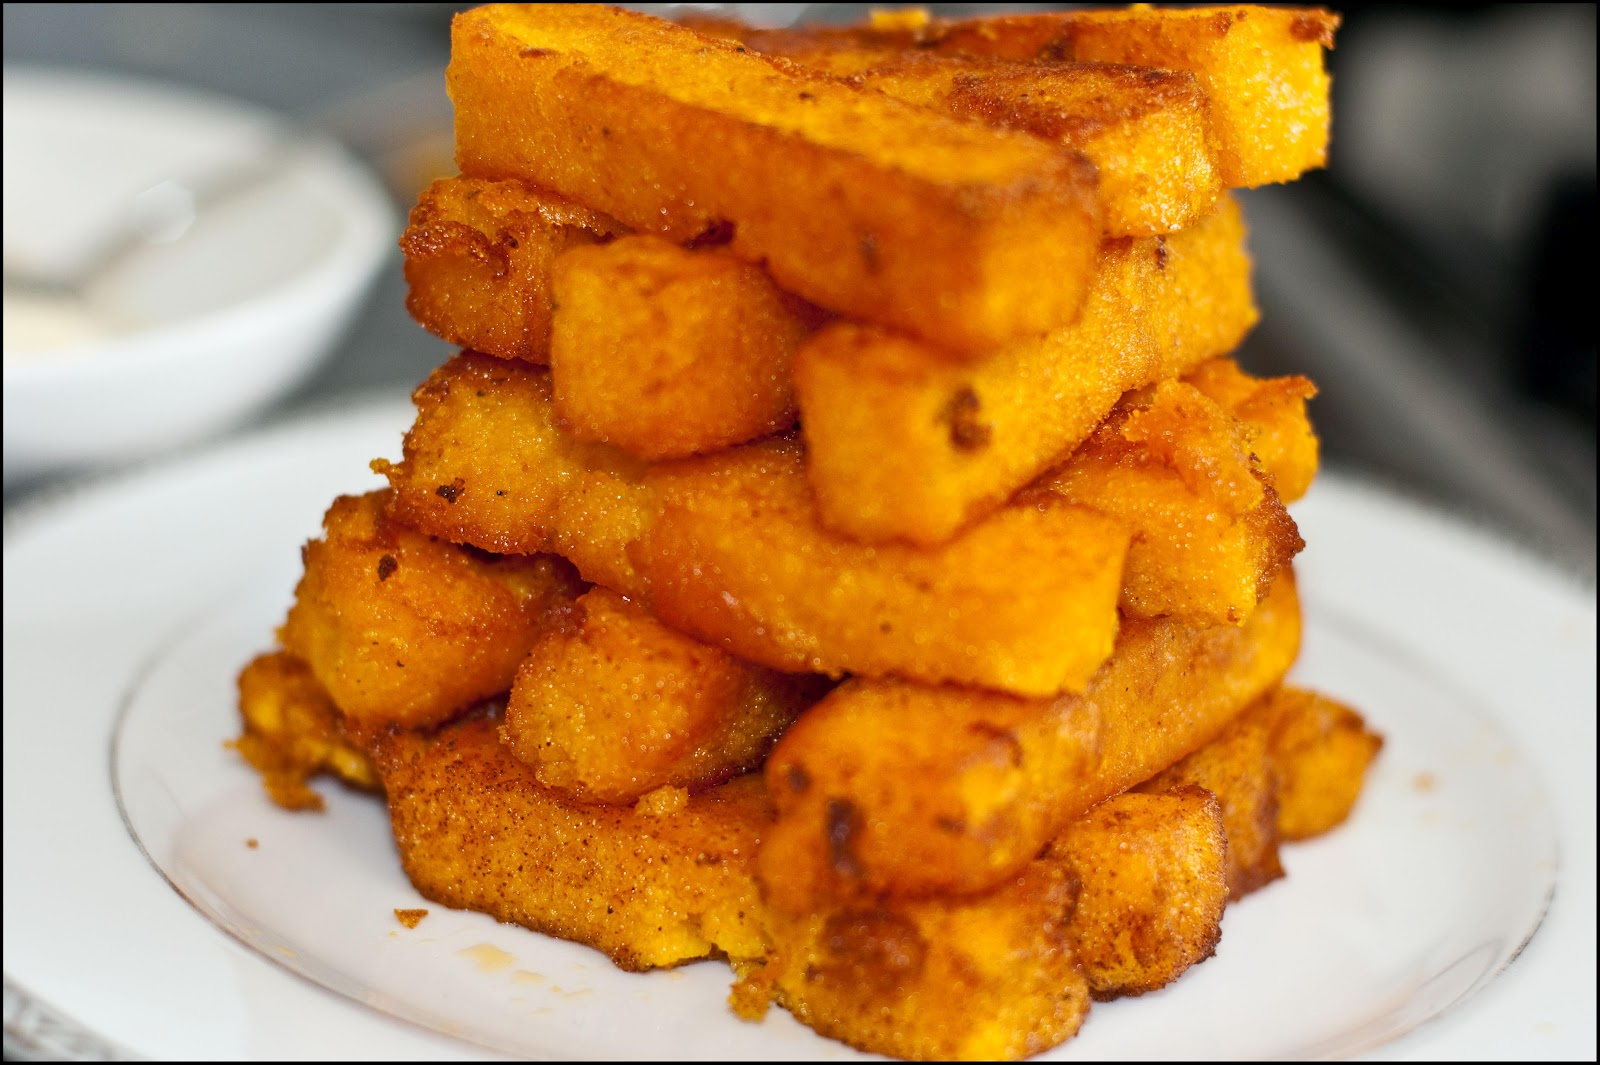 Dinner at Maya's: Roasted Butternut Squash Polenta Chips